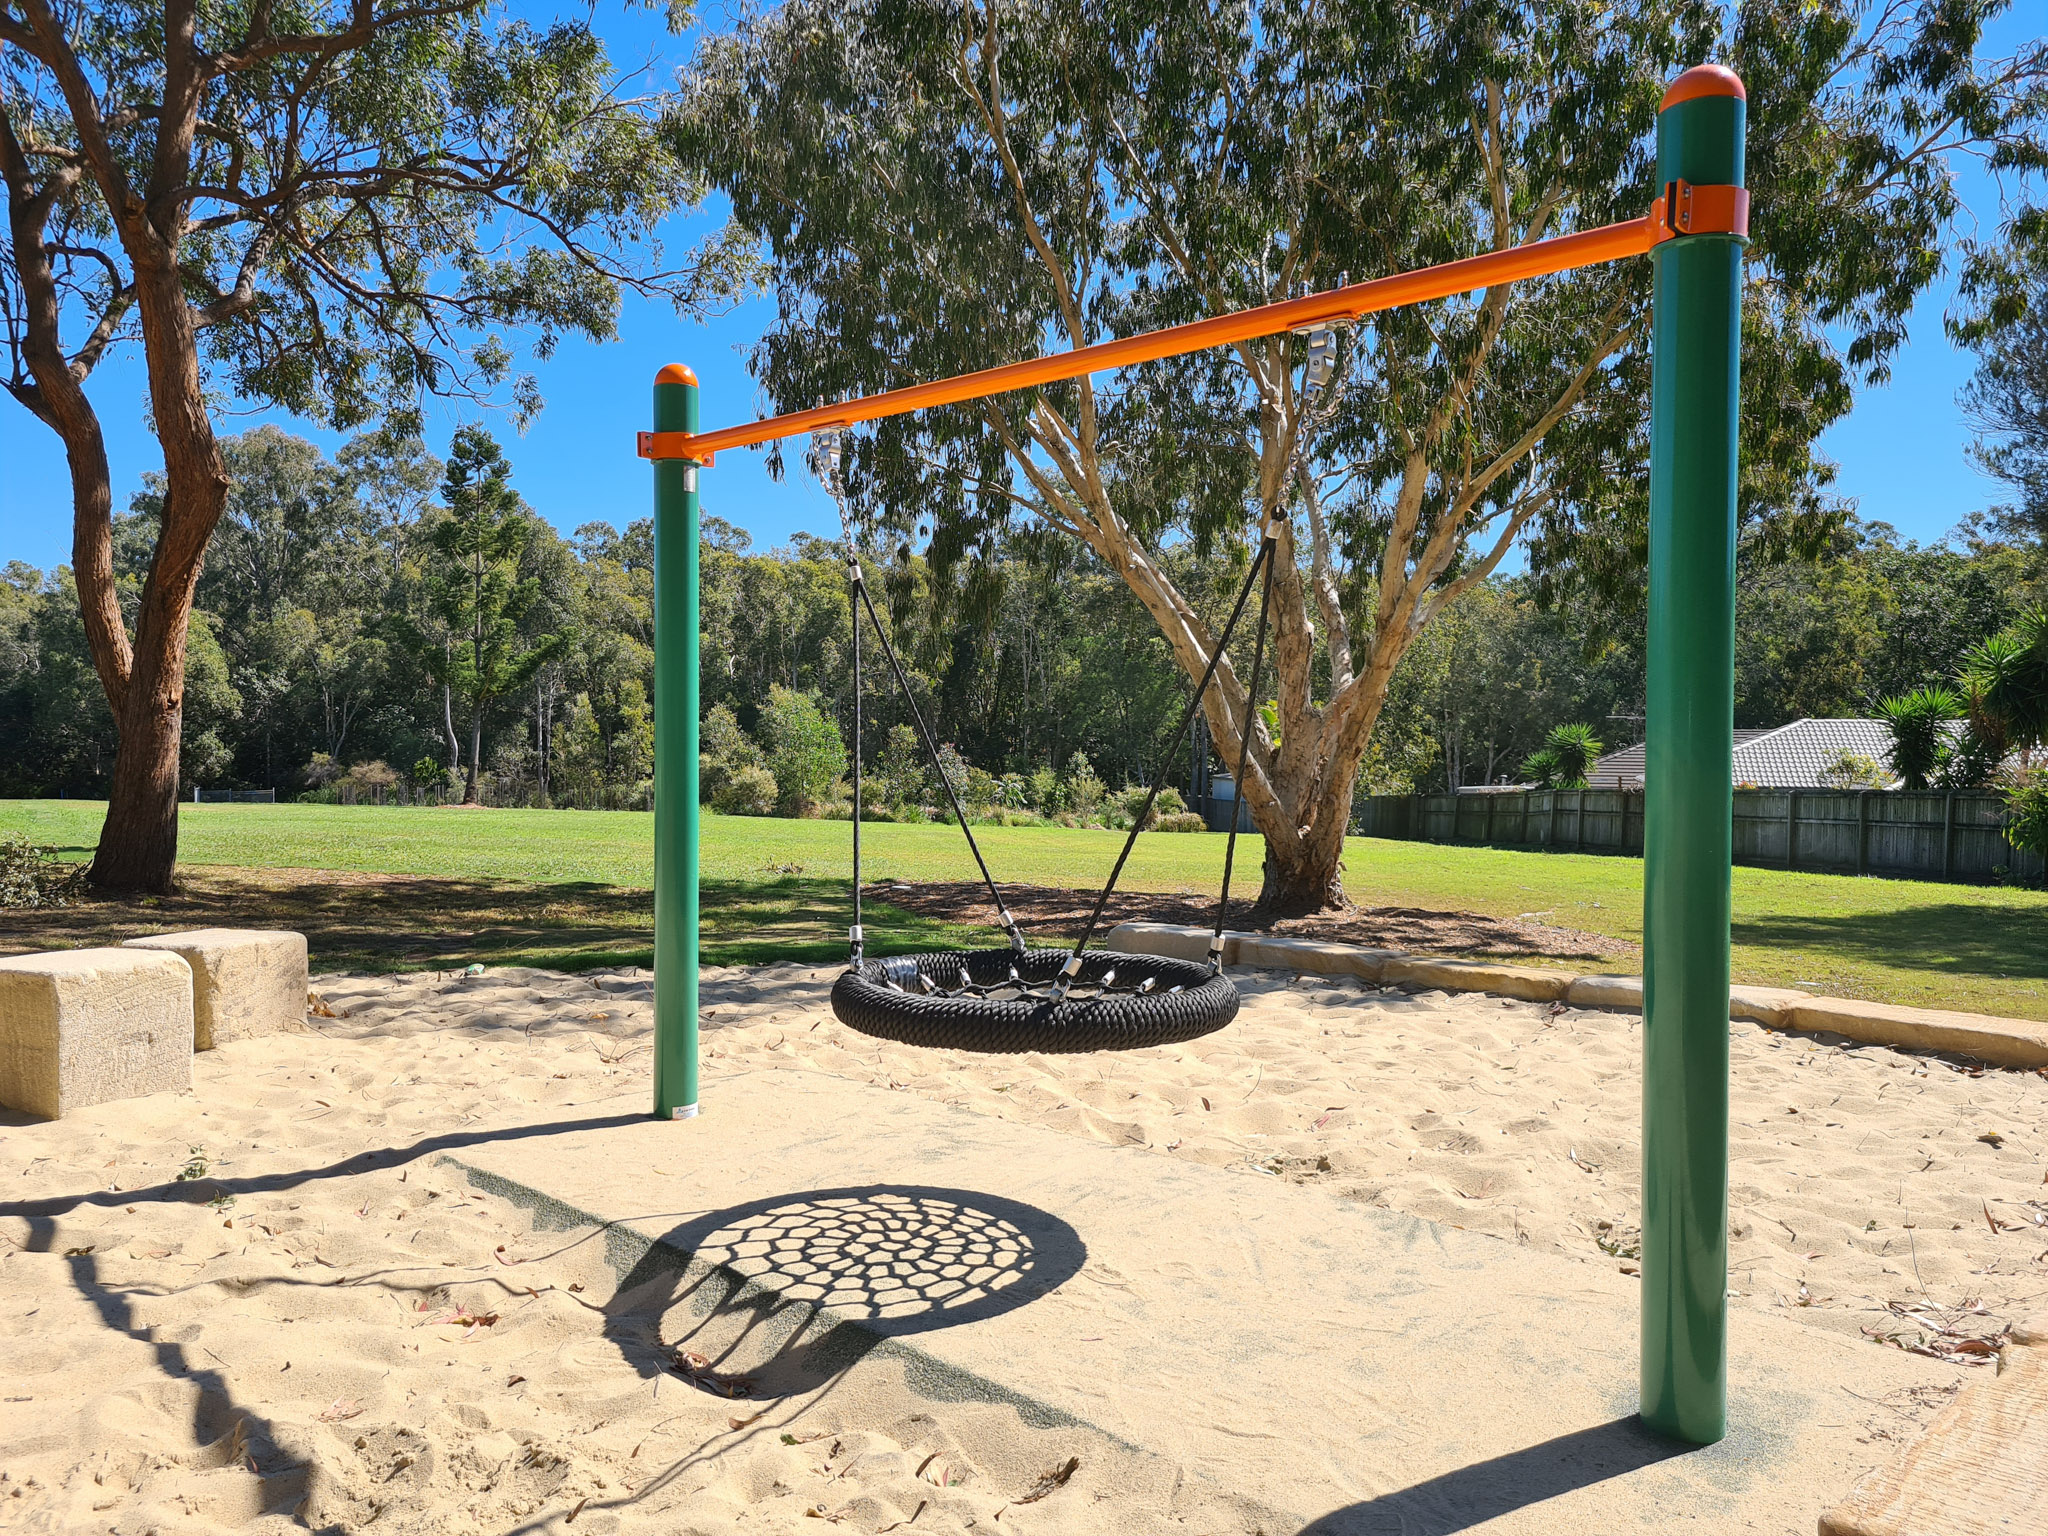 riley-peter-place-park-rope-play-9